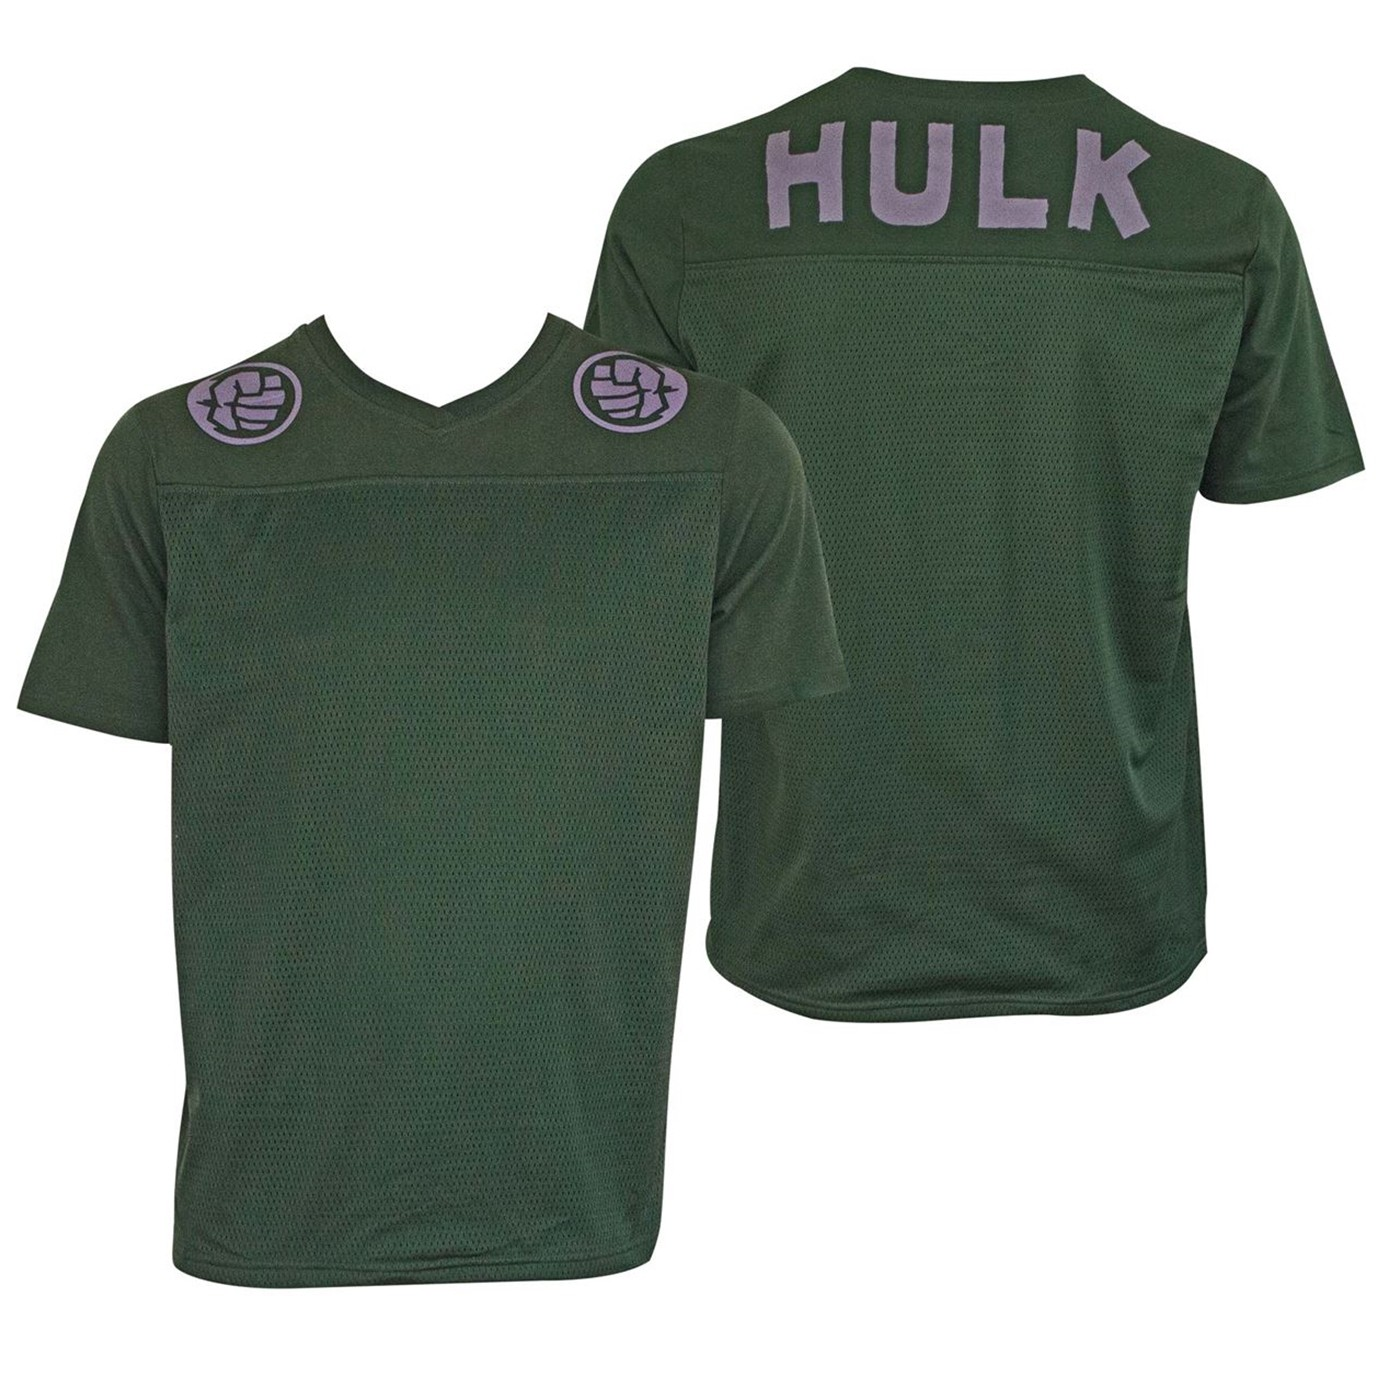 Incredible Hulk Football Jersey Men's Green T-Shirt